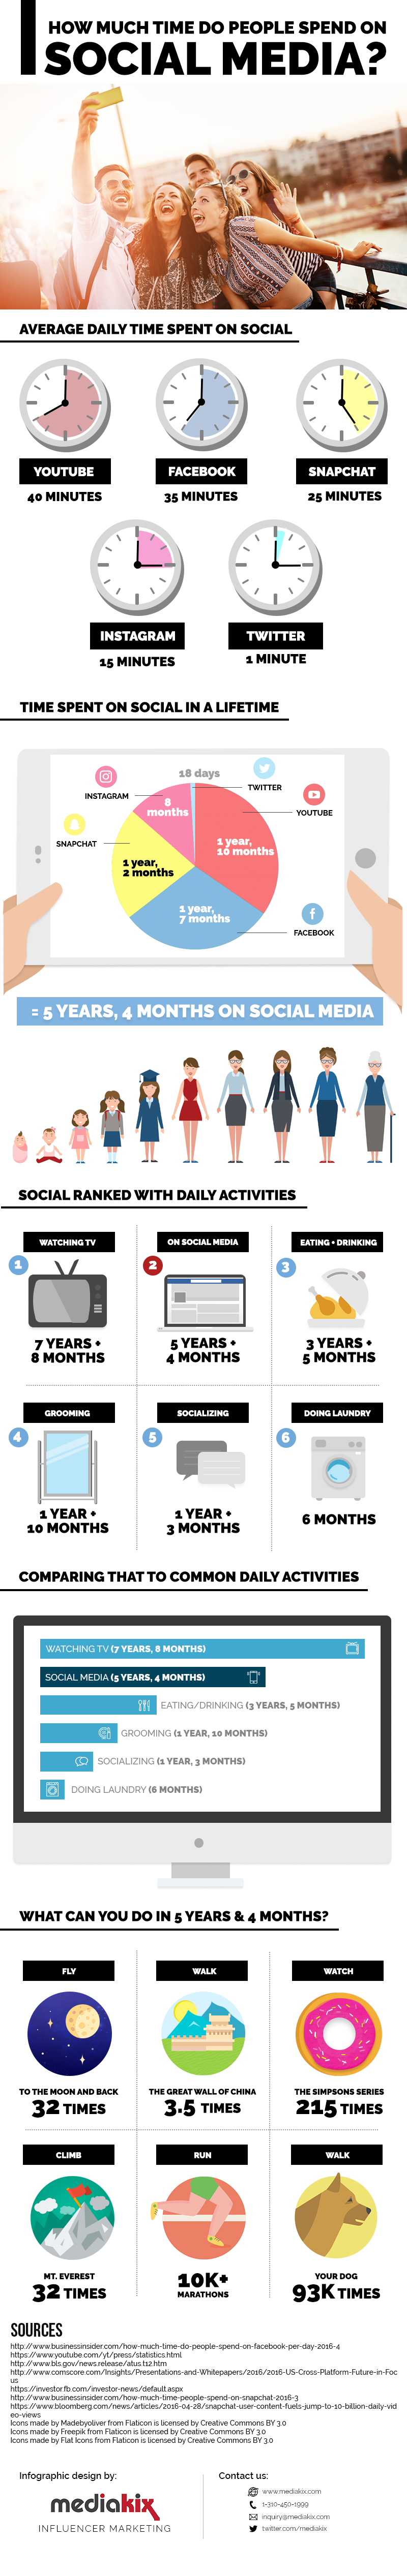 How Much Time Is Spent On Social Media(1).png